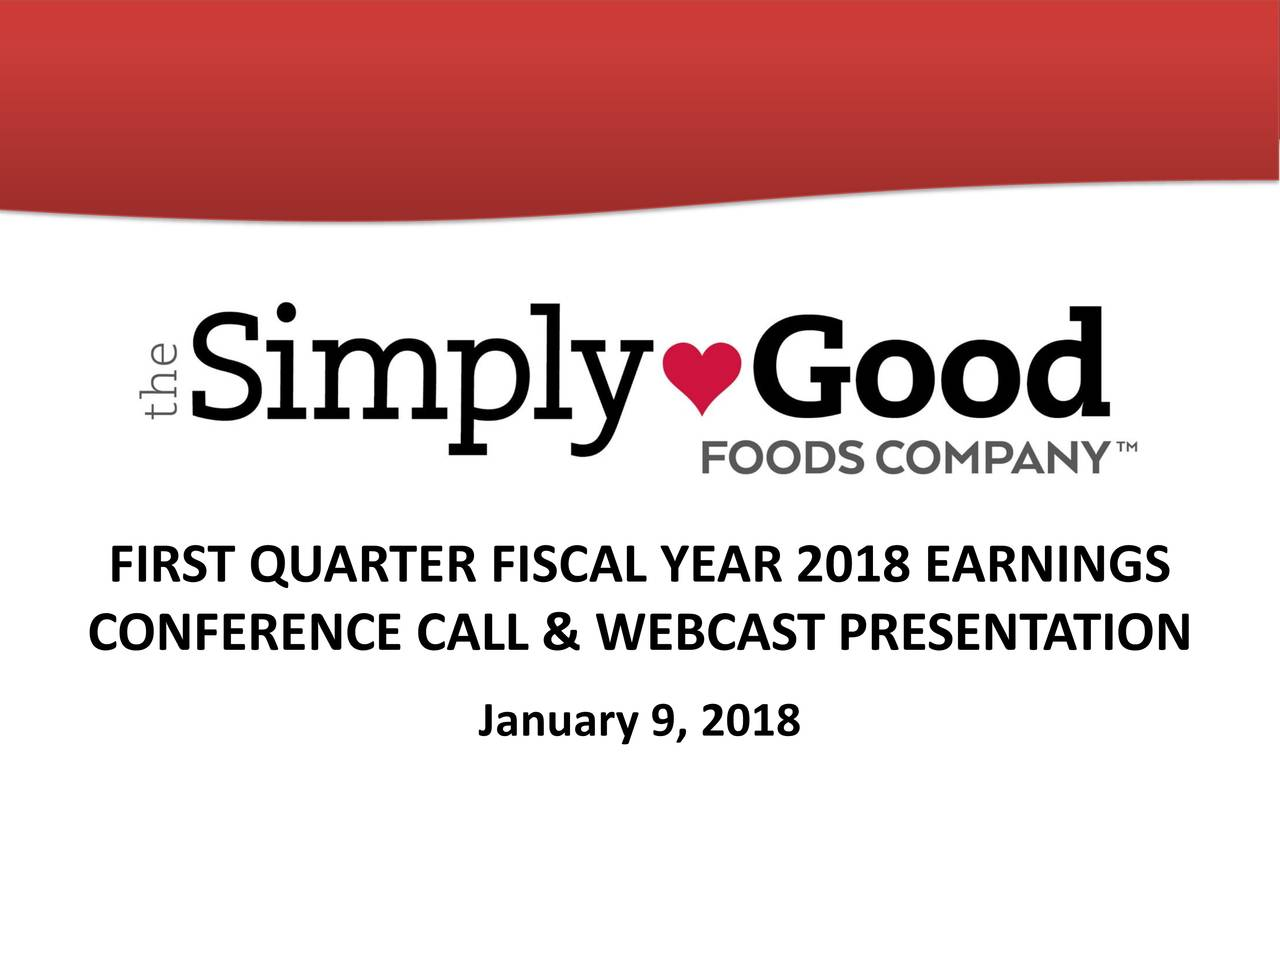 Simply good foods ipo